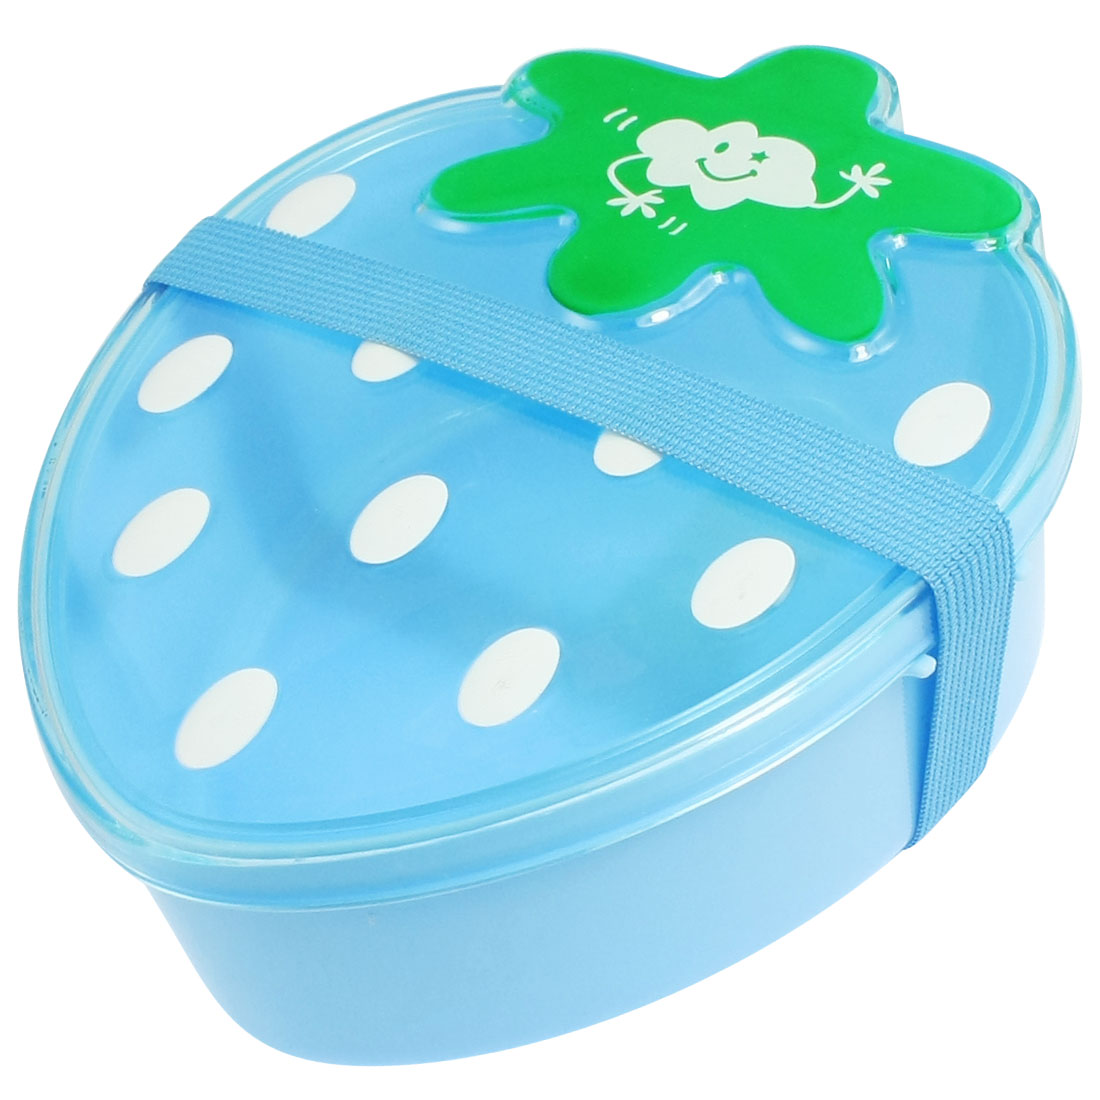 Blue Plastic Strawberry Shape Lunch Box Food Container w Spoon